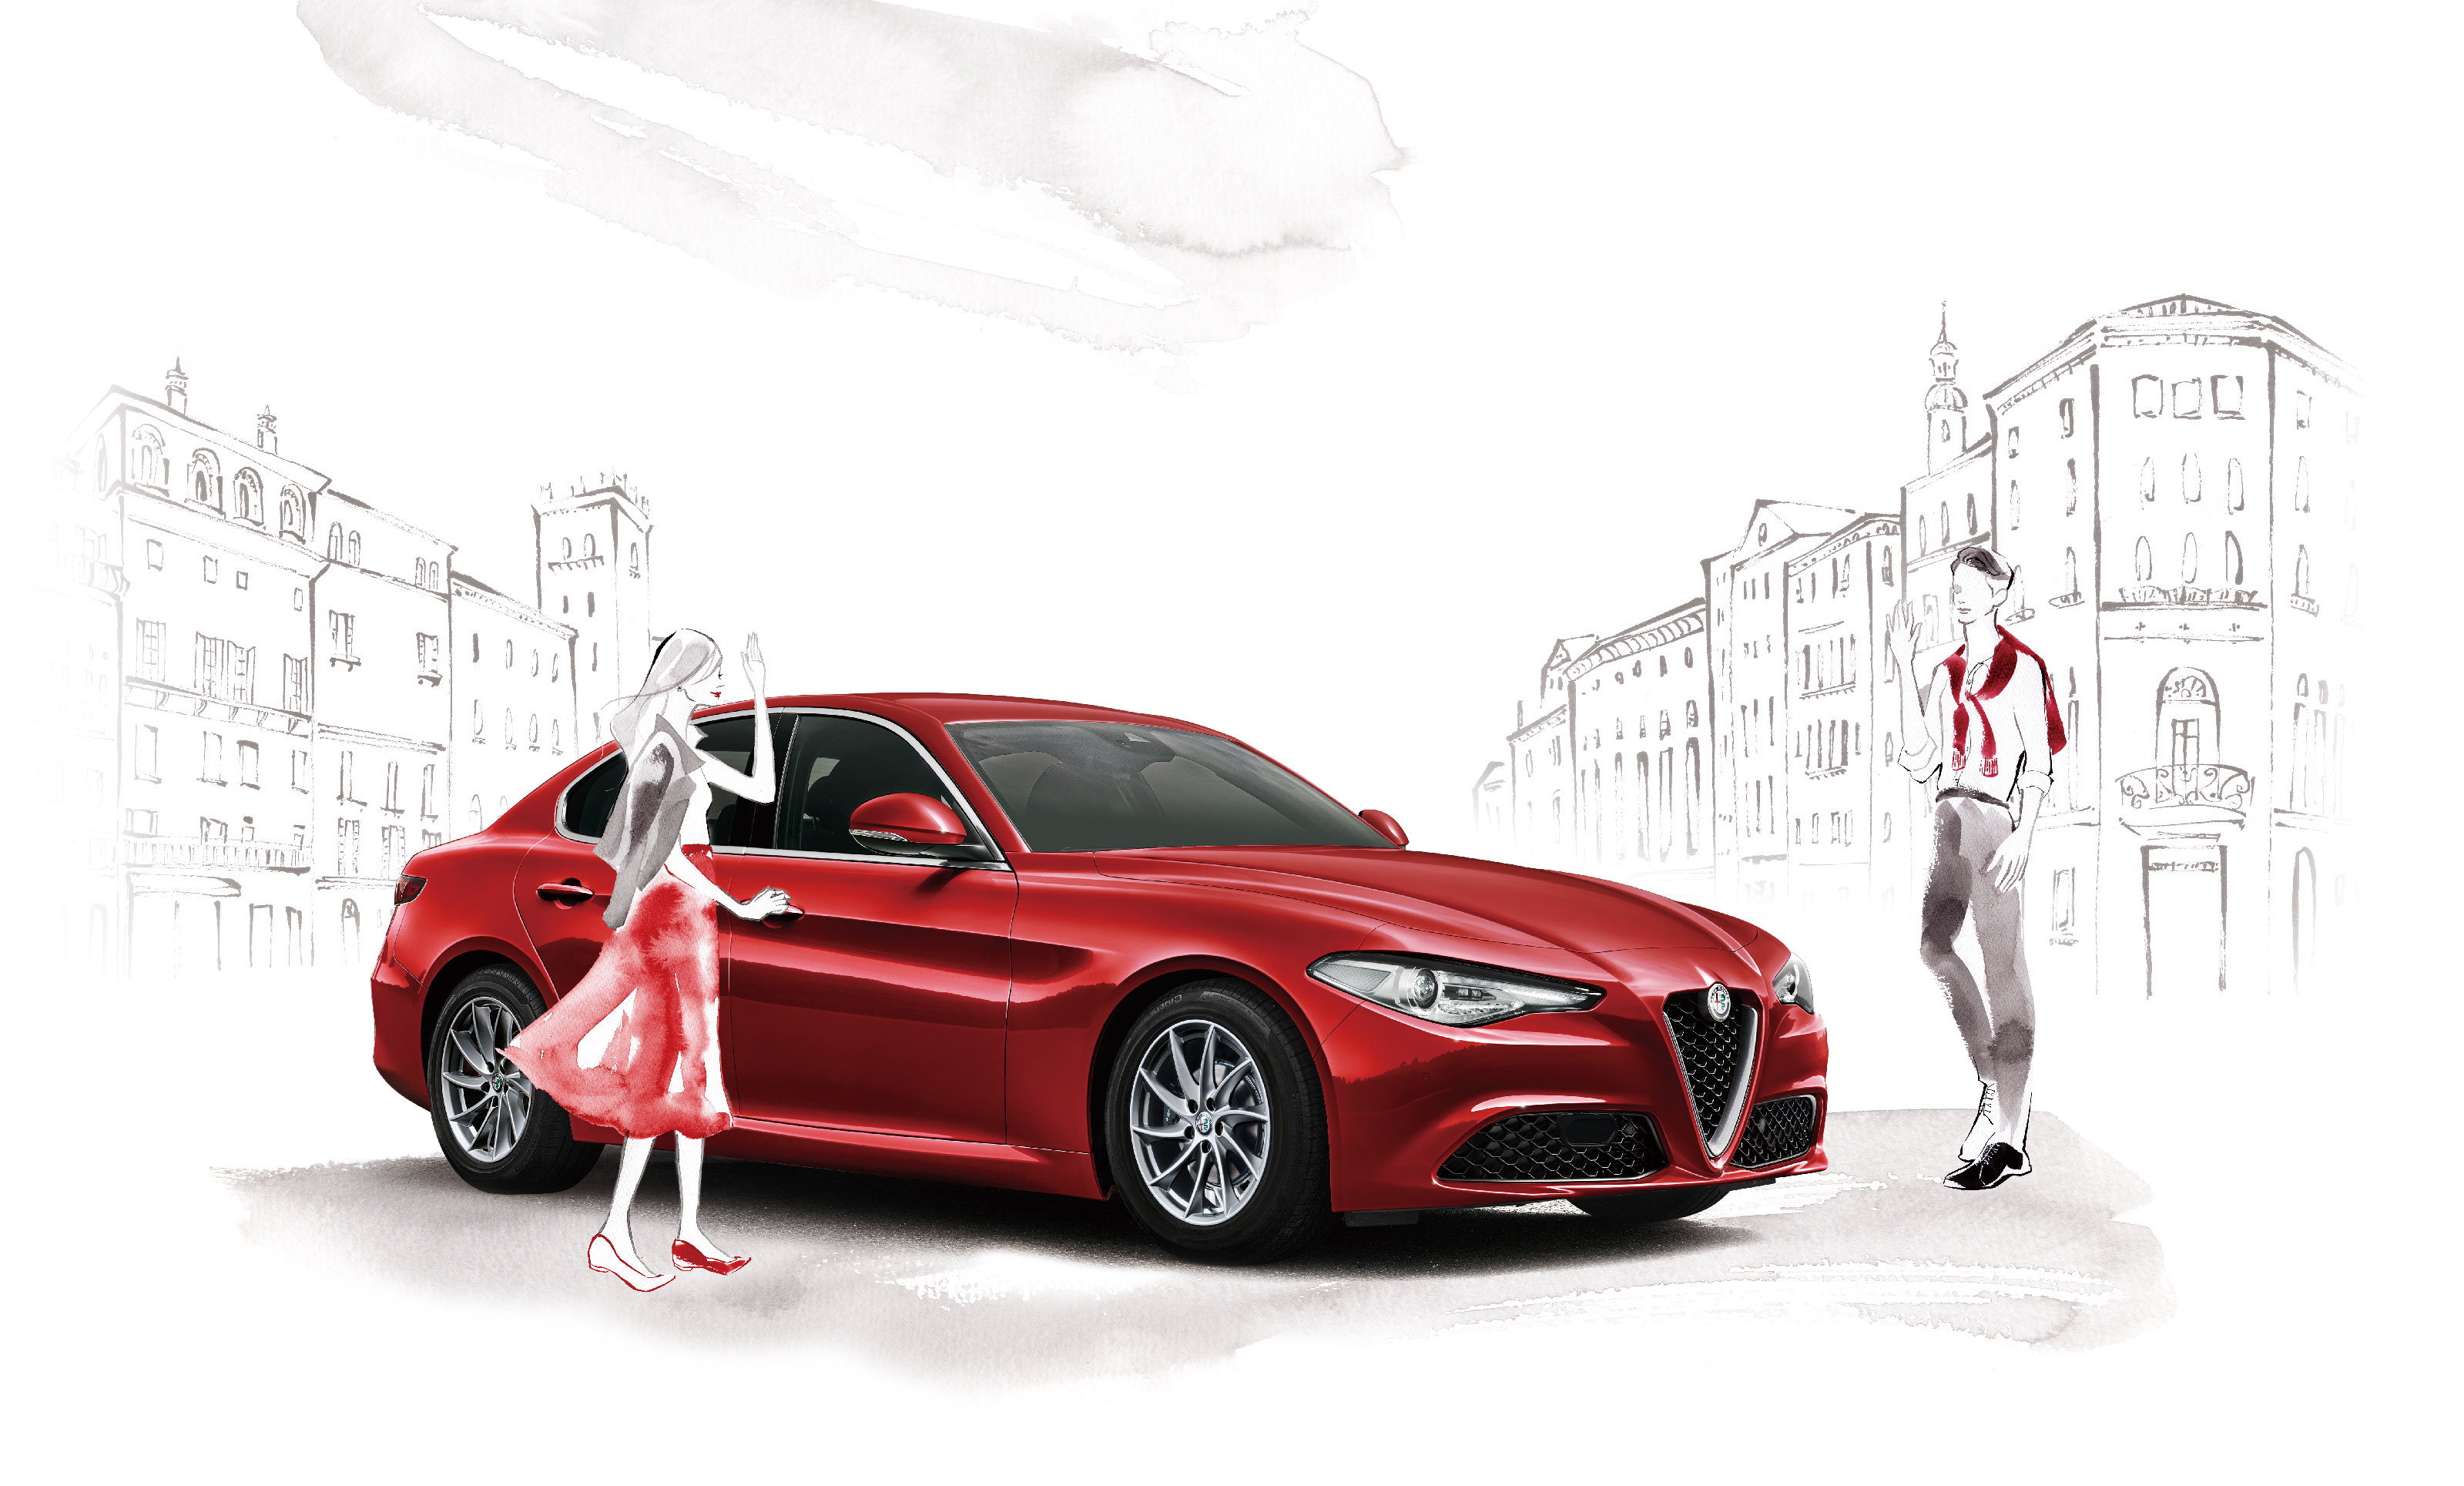 A DAY WITH GIULIA 試乗キャンペーン